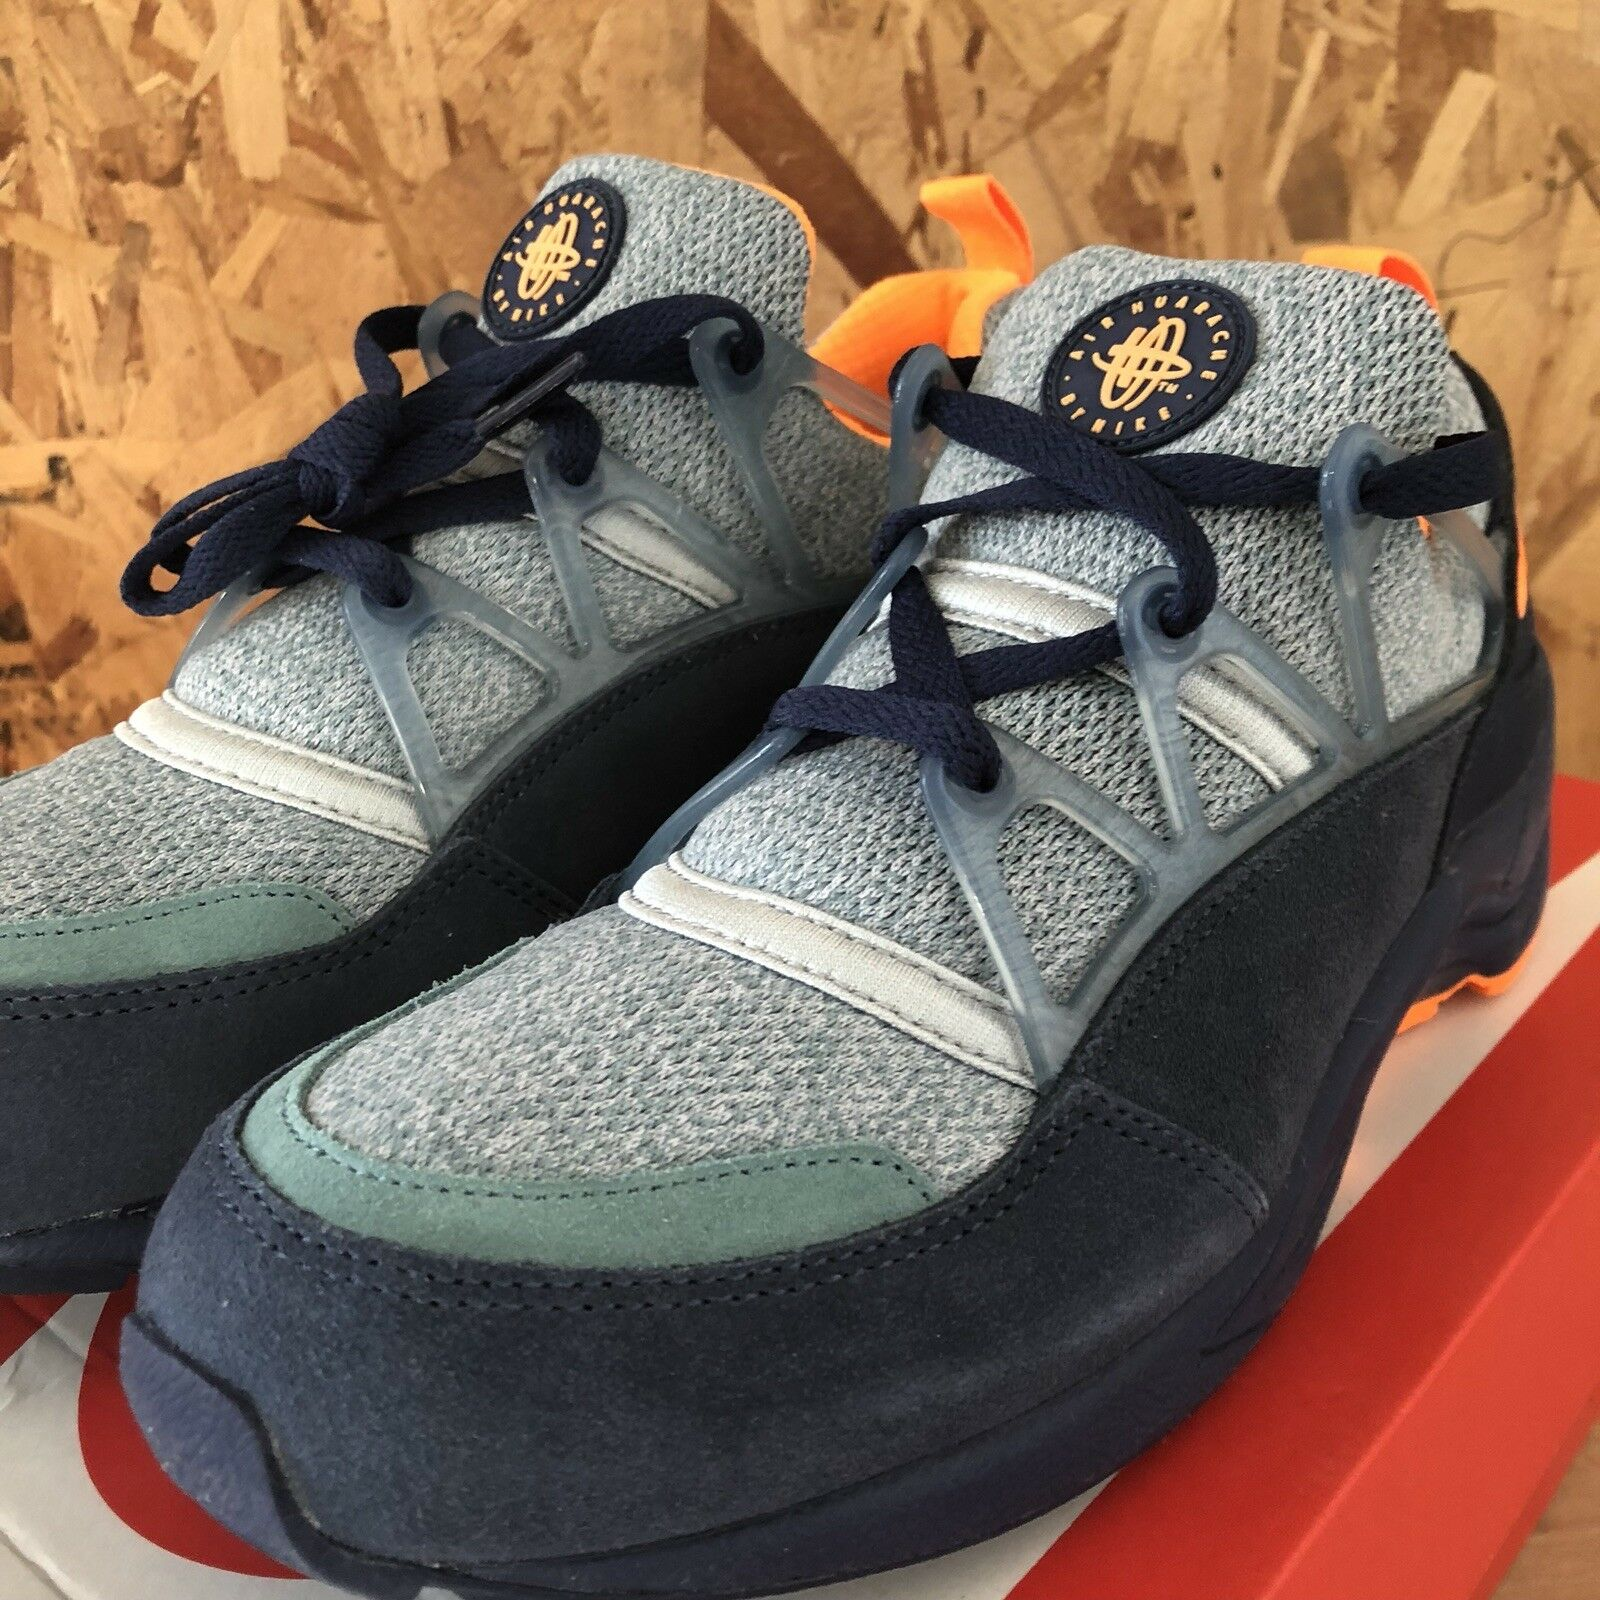 a10edc04f0 Nike Air Huarache Light Midnight Navy Bright Citrus Squadron bluee Size 8 -  nchern3949-Athletic Shoes